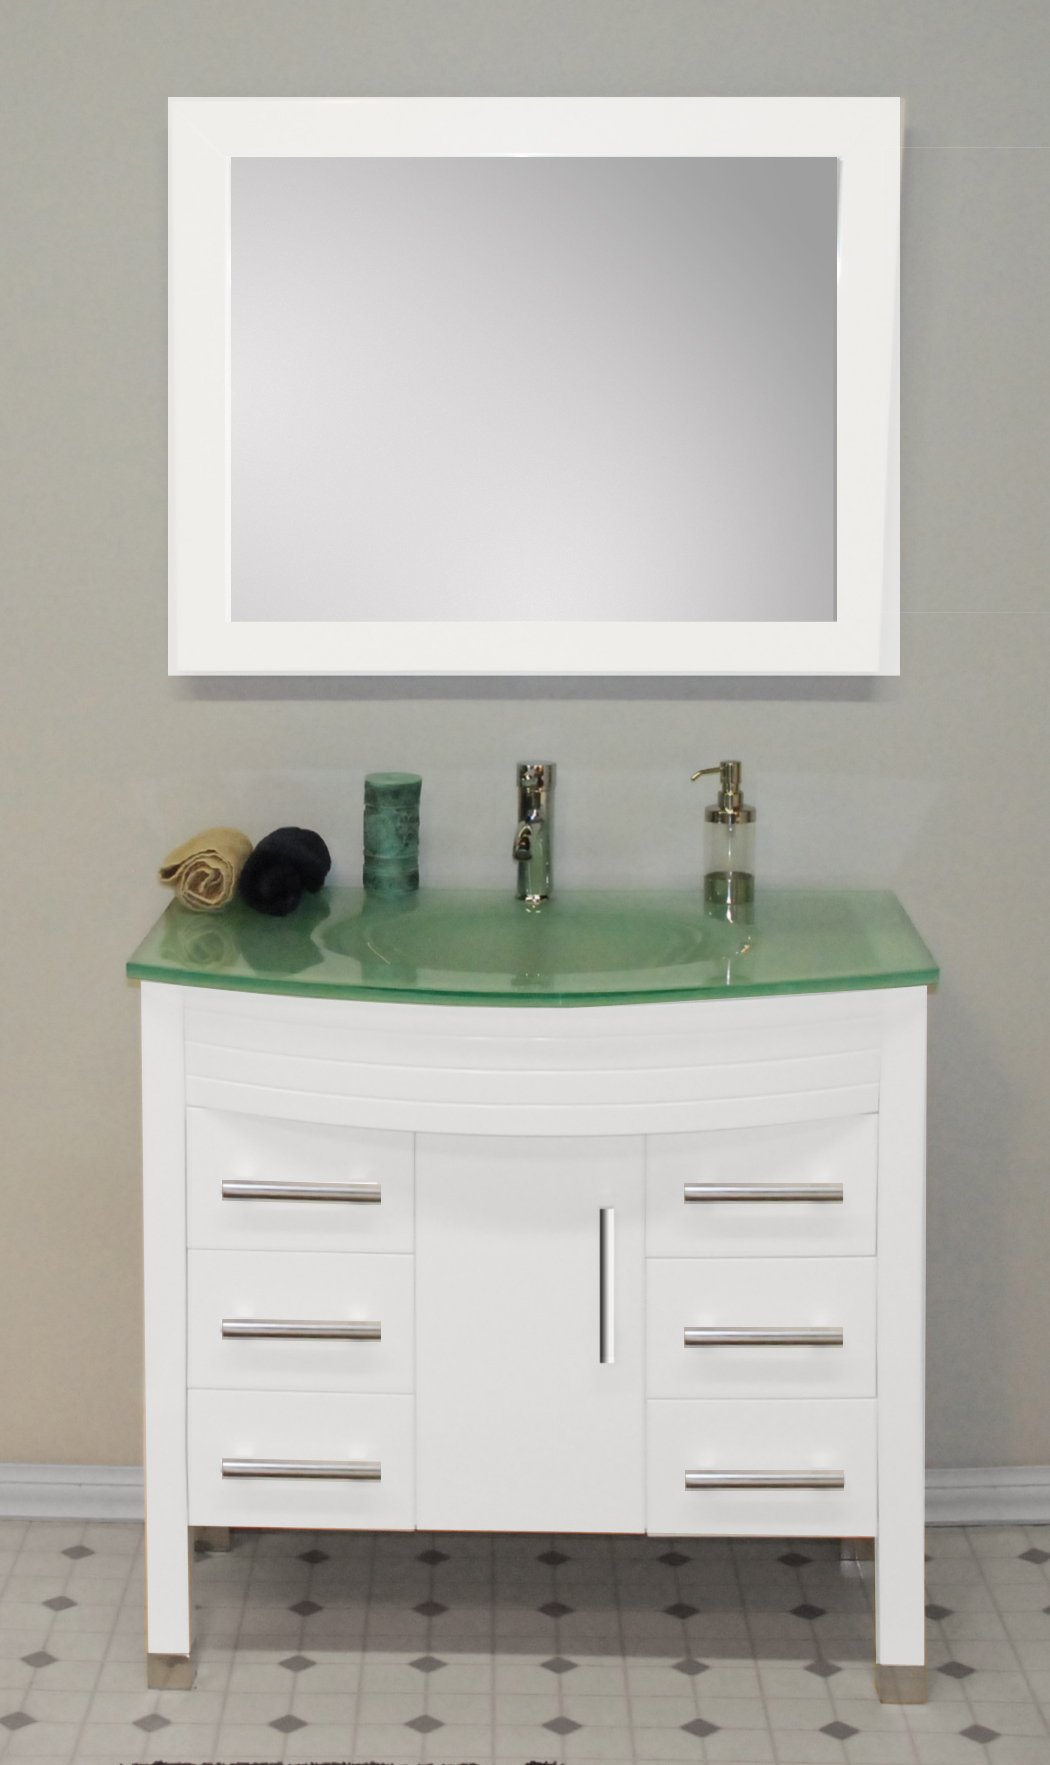 36 Inch White Solid Wood & Tempered Glass Single Basin Sink Bathroom Vanity Set- ''Thayer'' (Chrome Faucet) by The Tub Connection